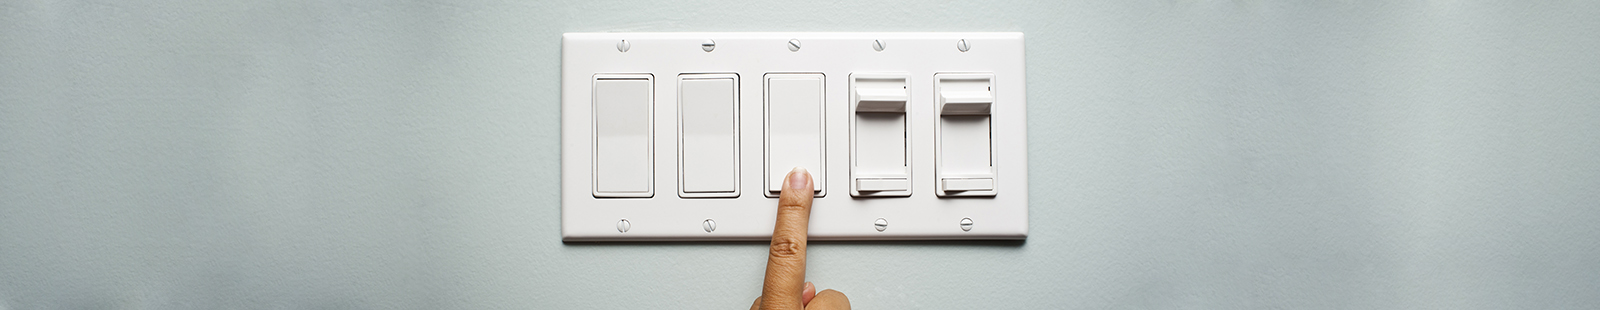 Woman's hand on a light switch showing that she is turning off the power and electricity to conserve energy